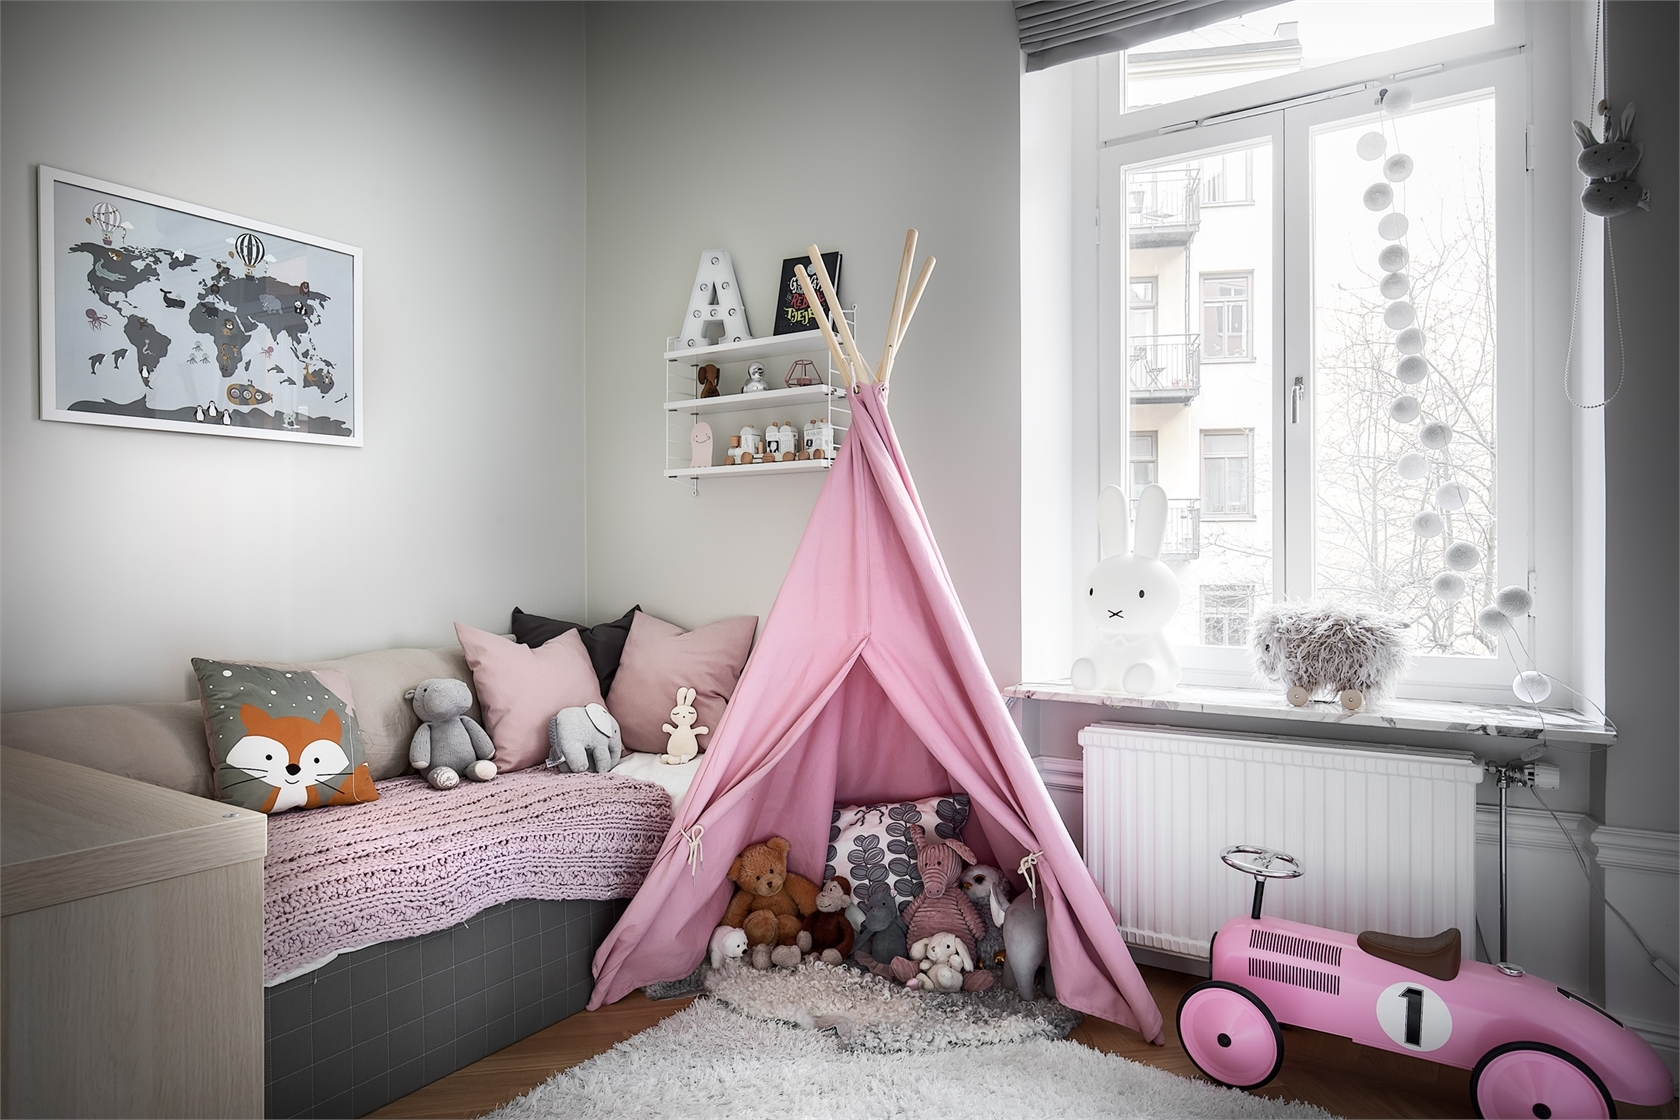 Not toys: decorating a children's room